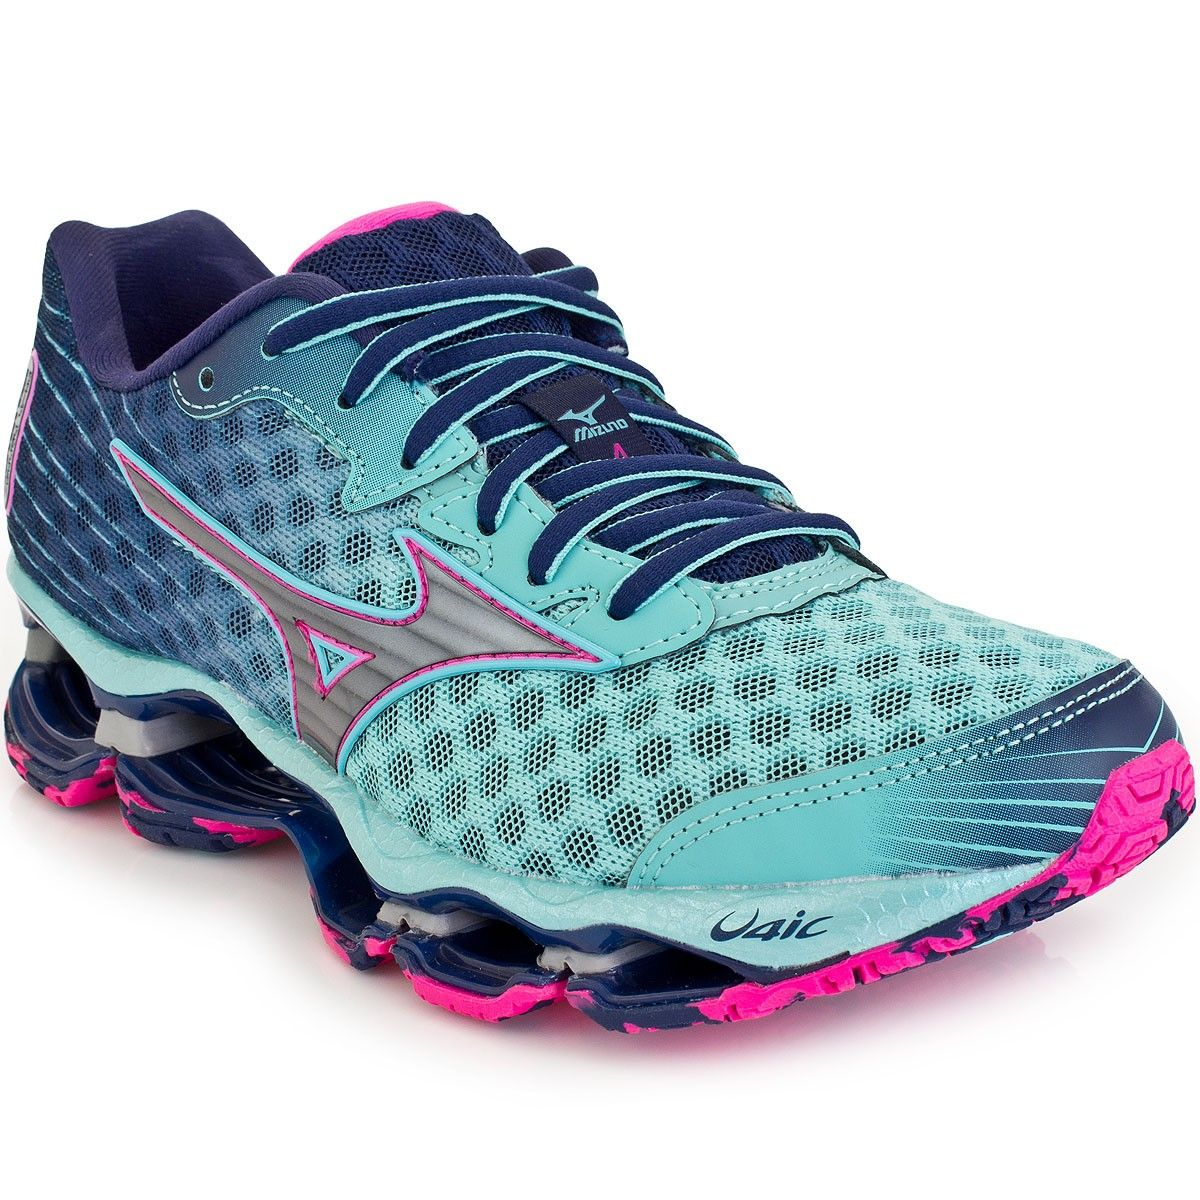 5cd5387d2dc36 Tênis Mizuno Wave Prophecy 4 feminino   Sapato   Sports footwear ...